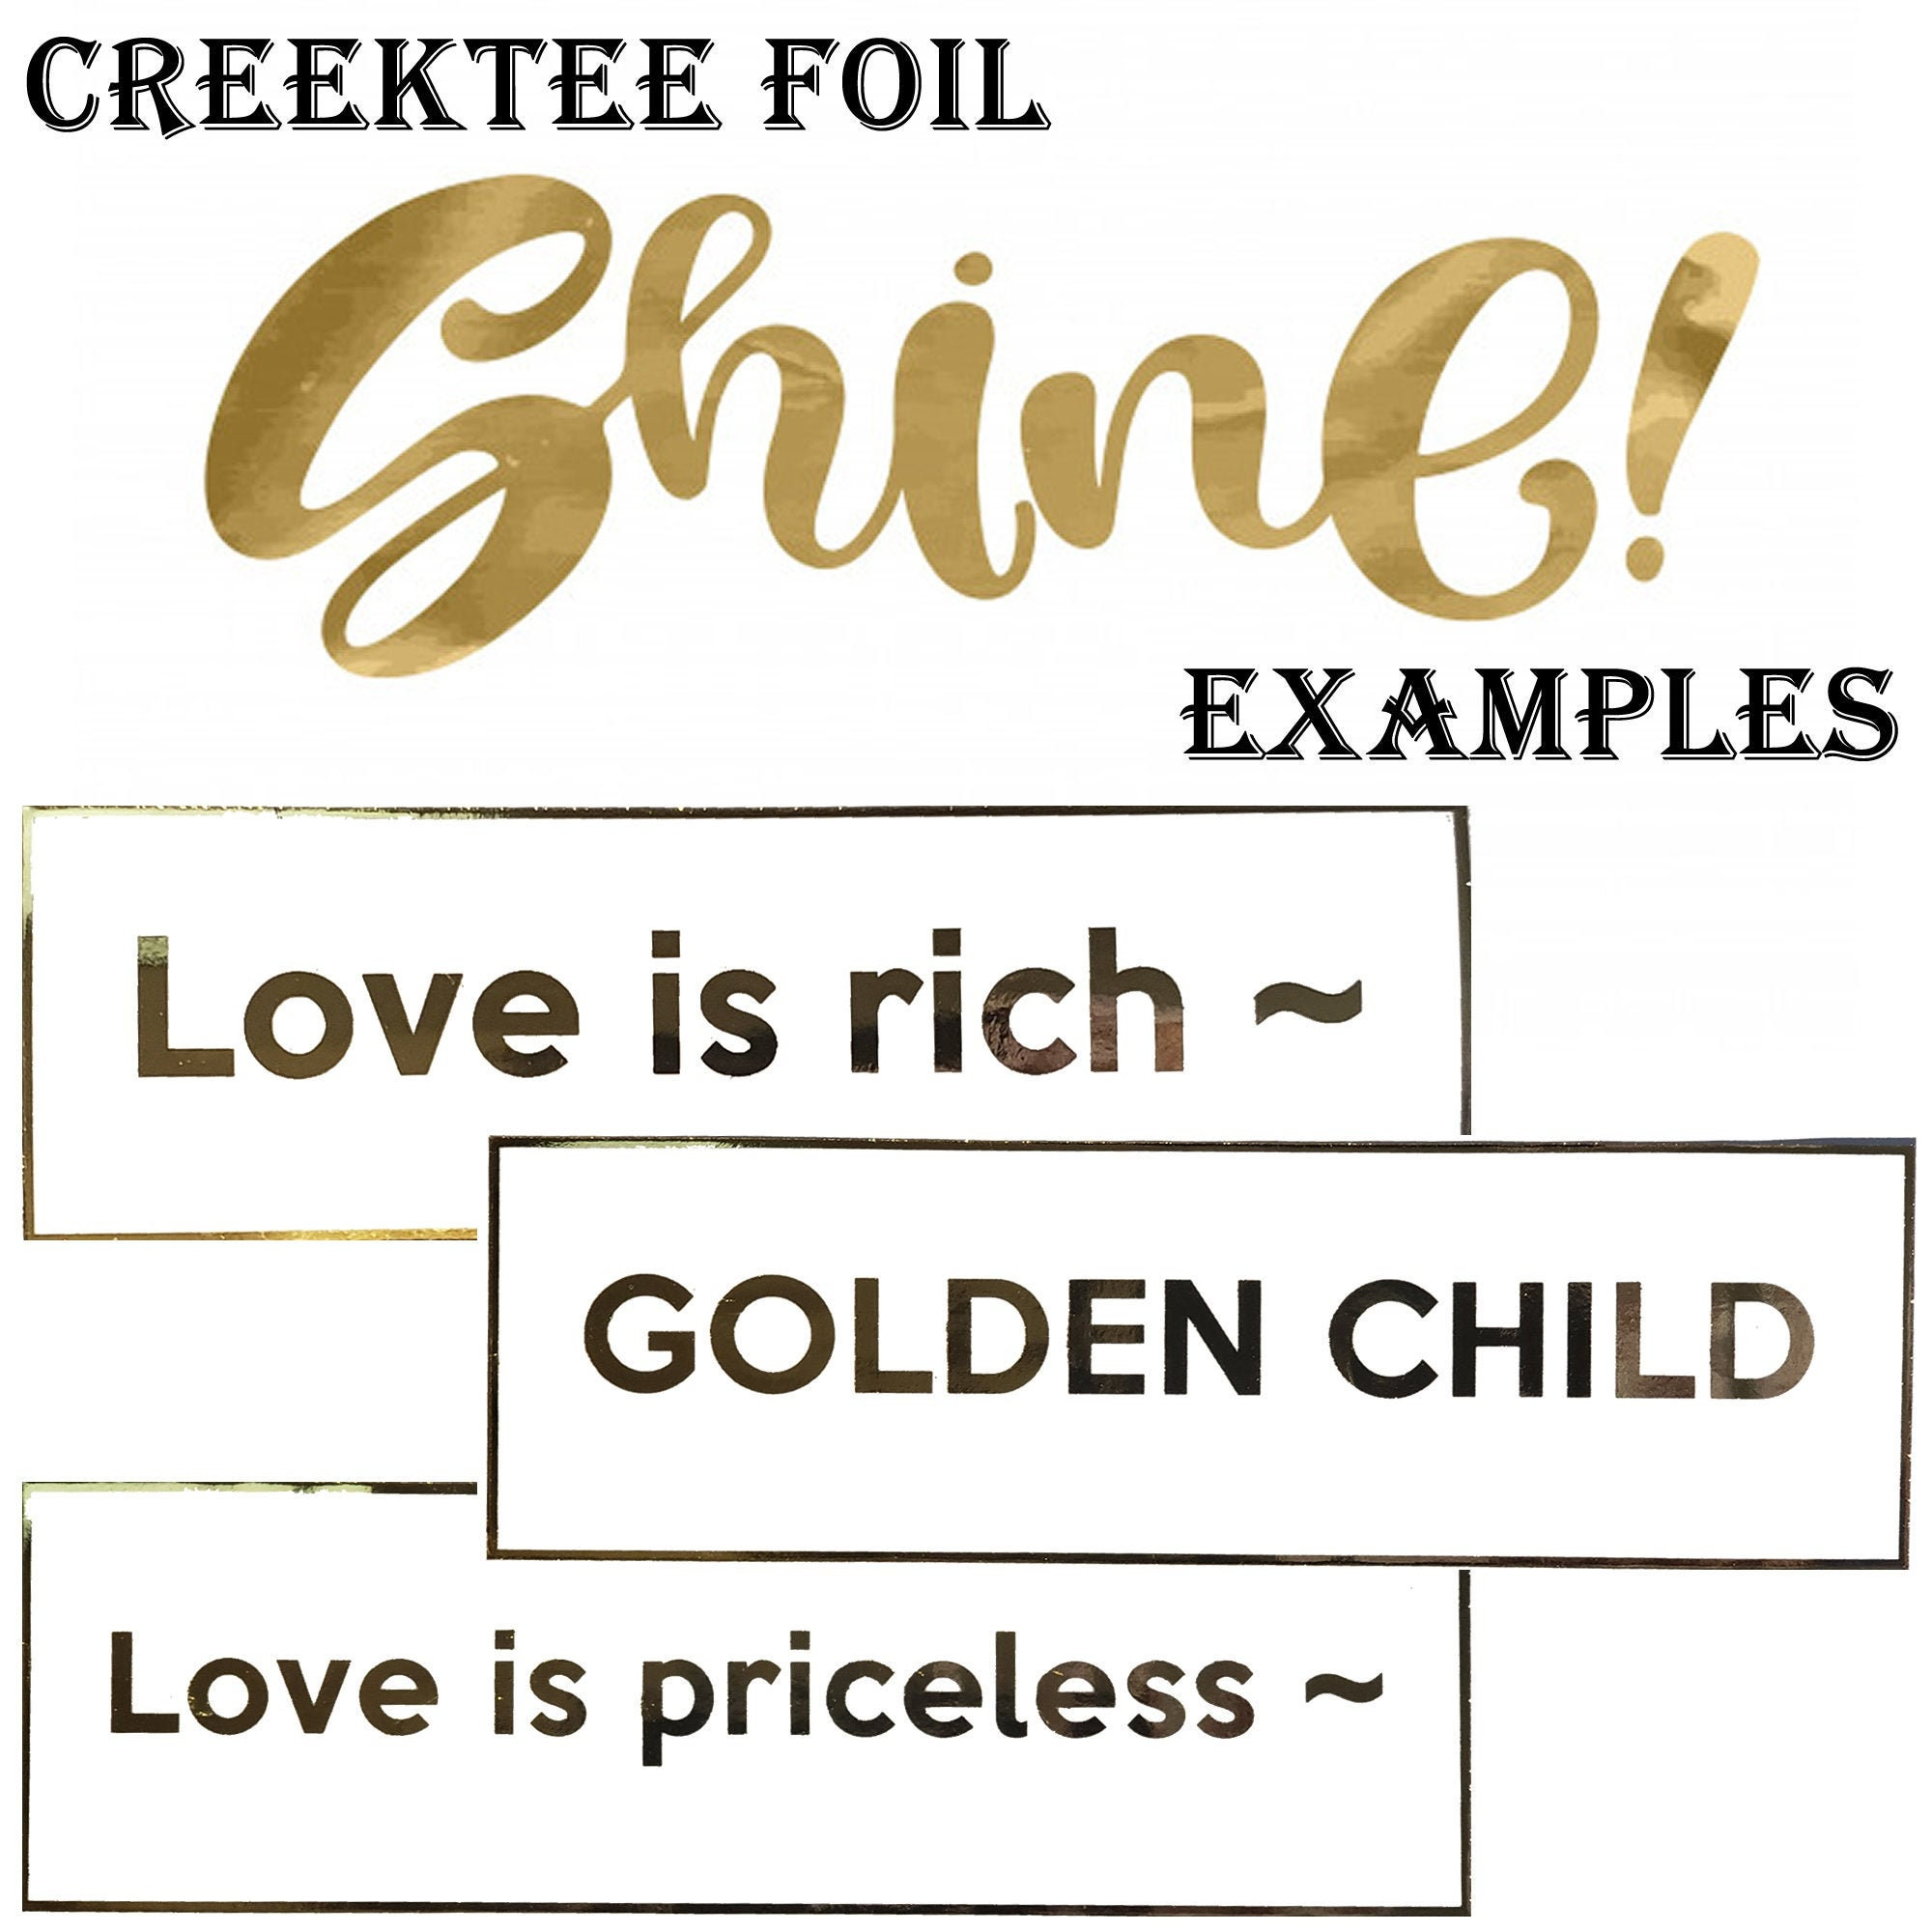 CAD$9.74 - FOIL SHINE Custom text  10 x 3 Bumper Sticker or Magnetic Bumper Sticker Available